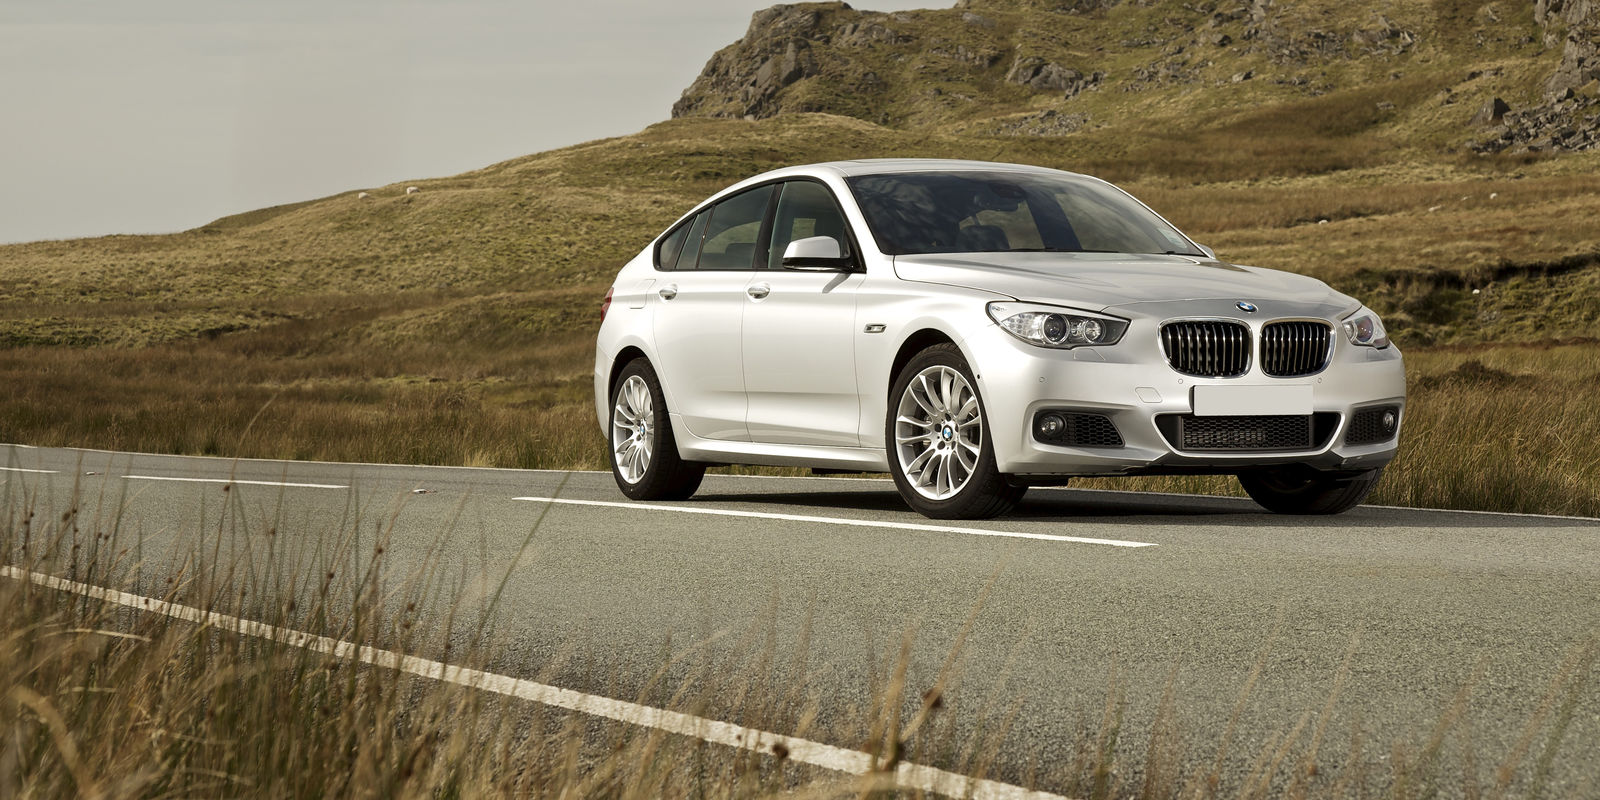 Bmw 5 Series Gran Turismo Review Bmw 5 Series Gran Turismo Review Carwow